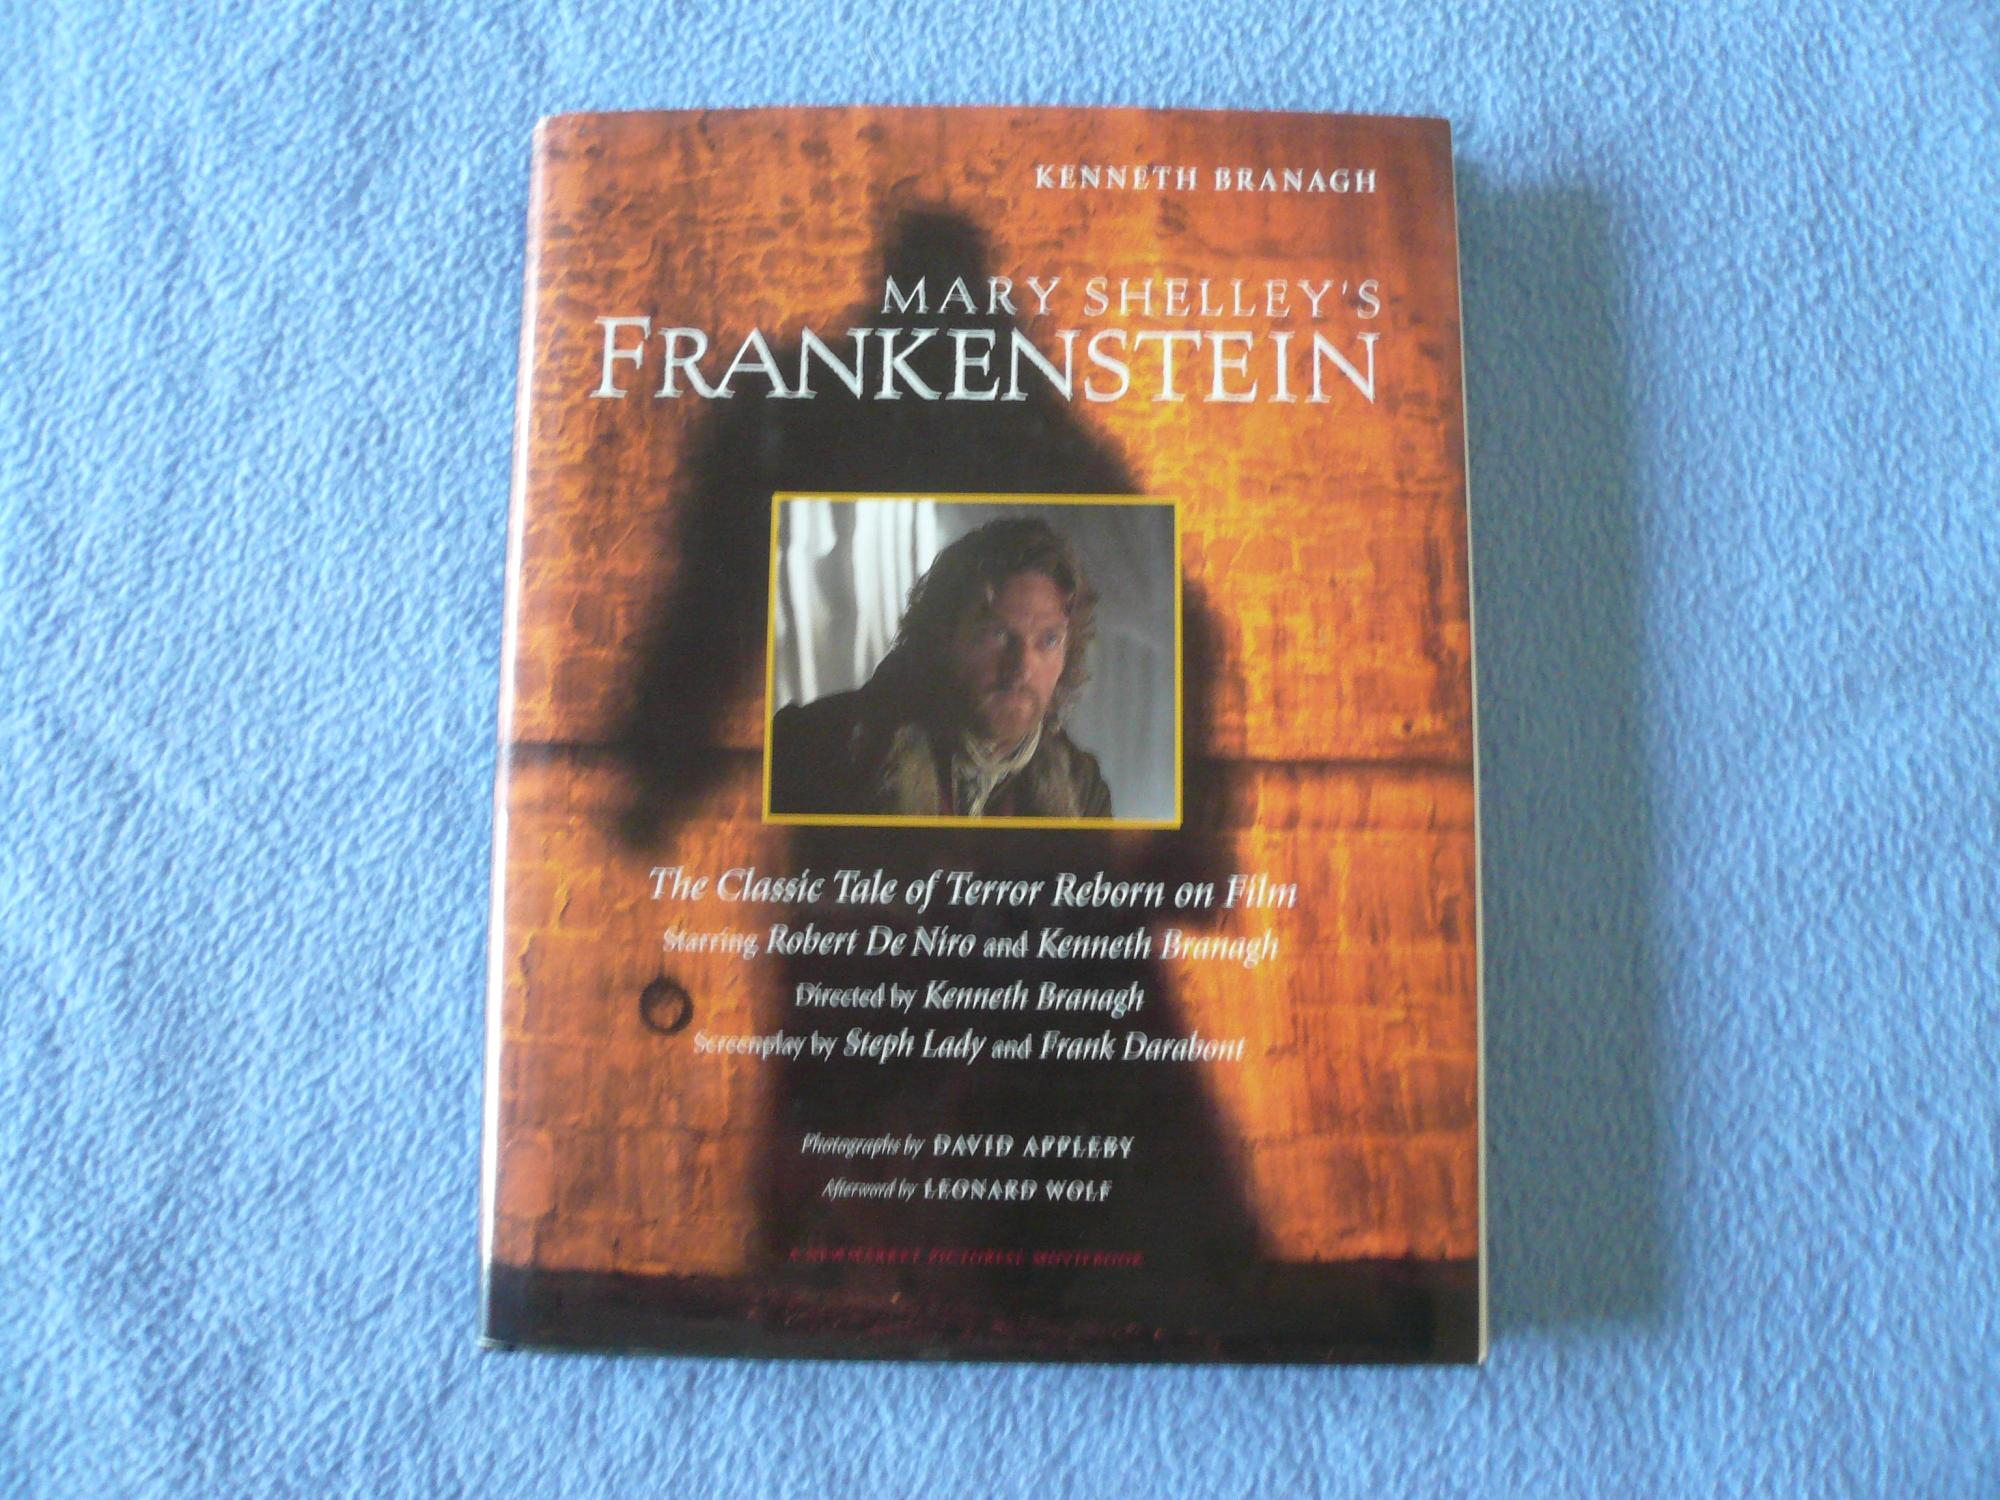 Mary Shelley's Frankenstein: A Classic Tale of Terror Reborn on Film